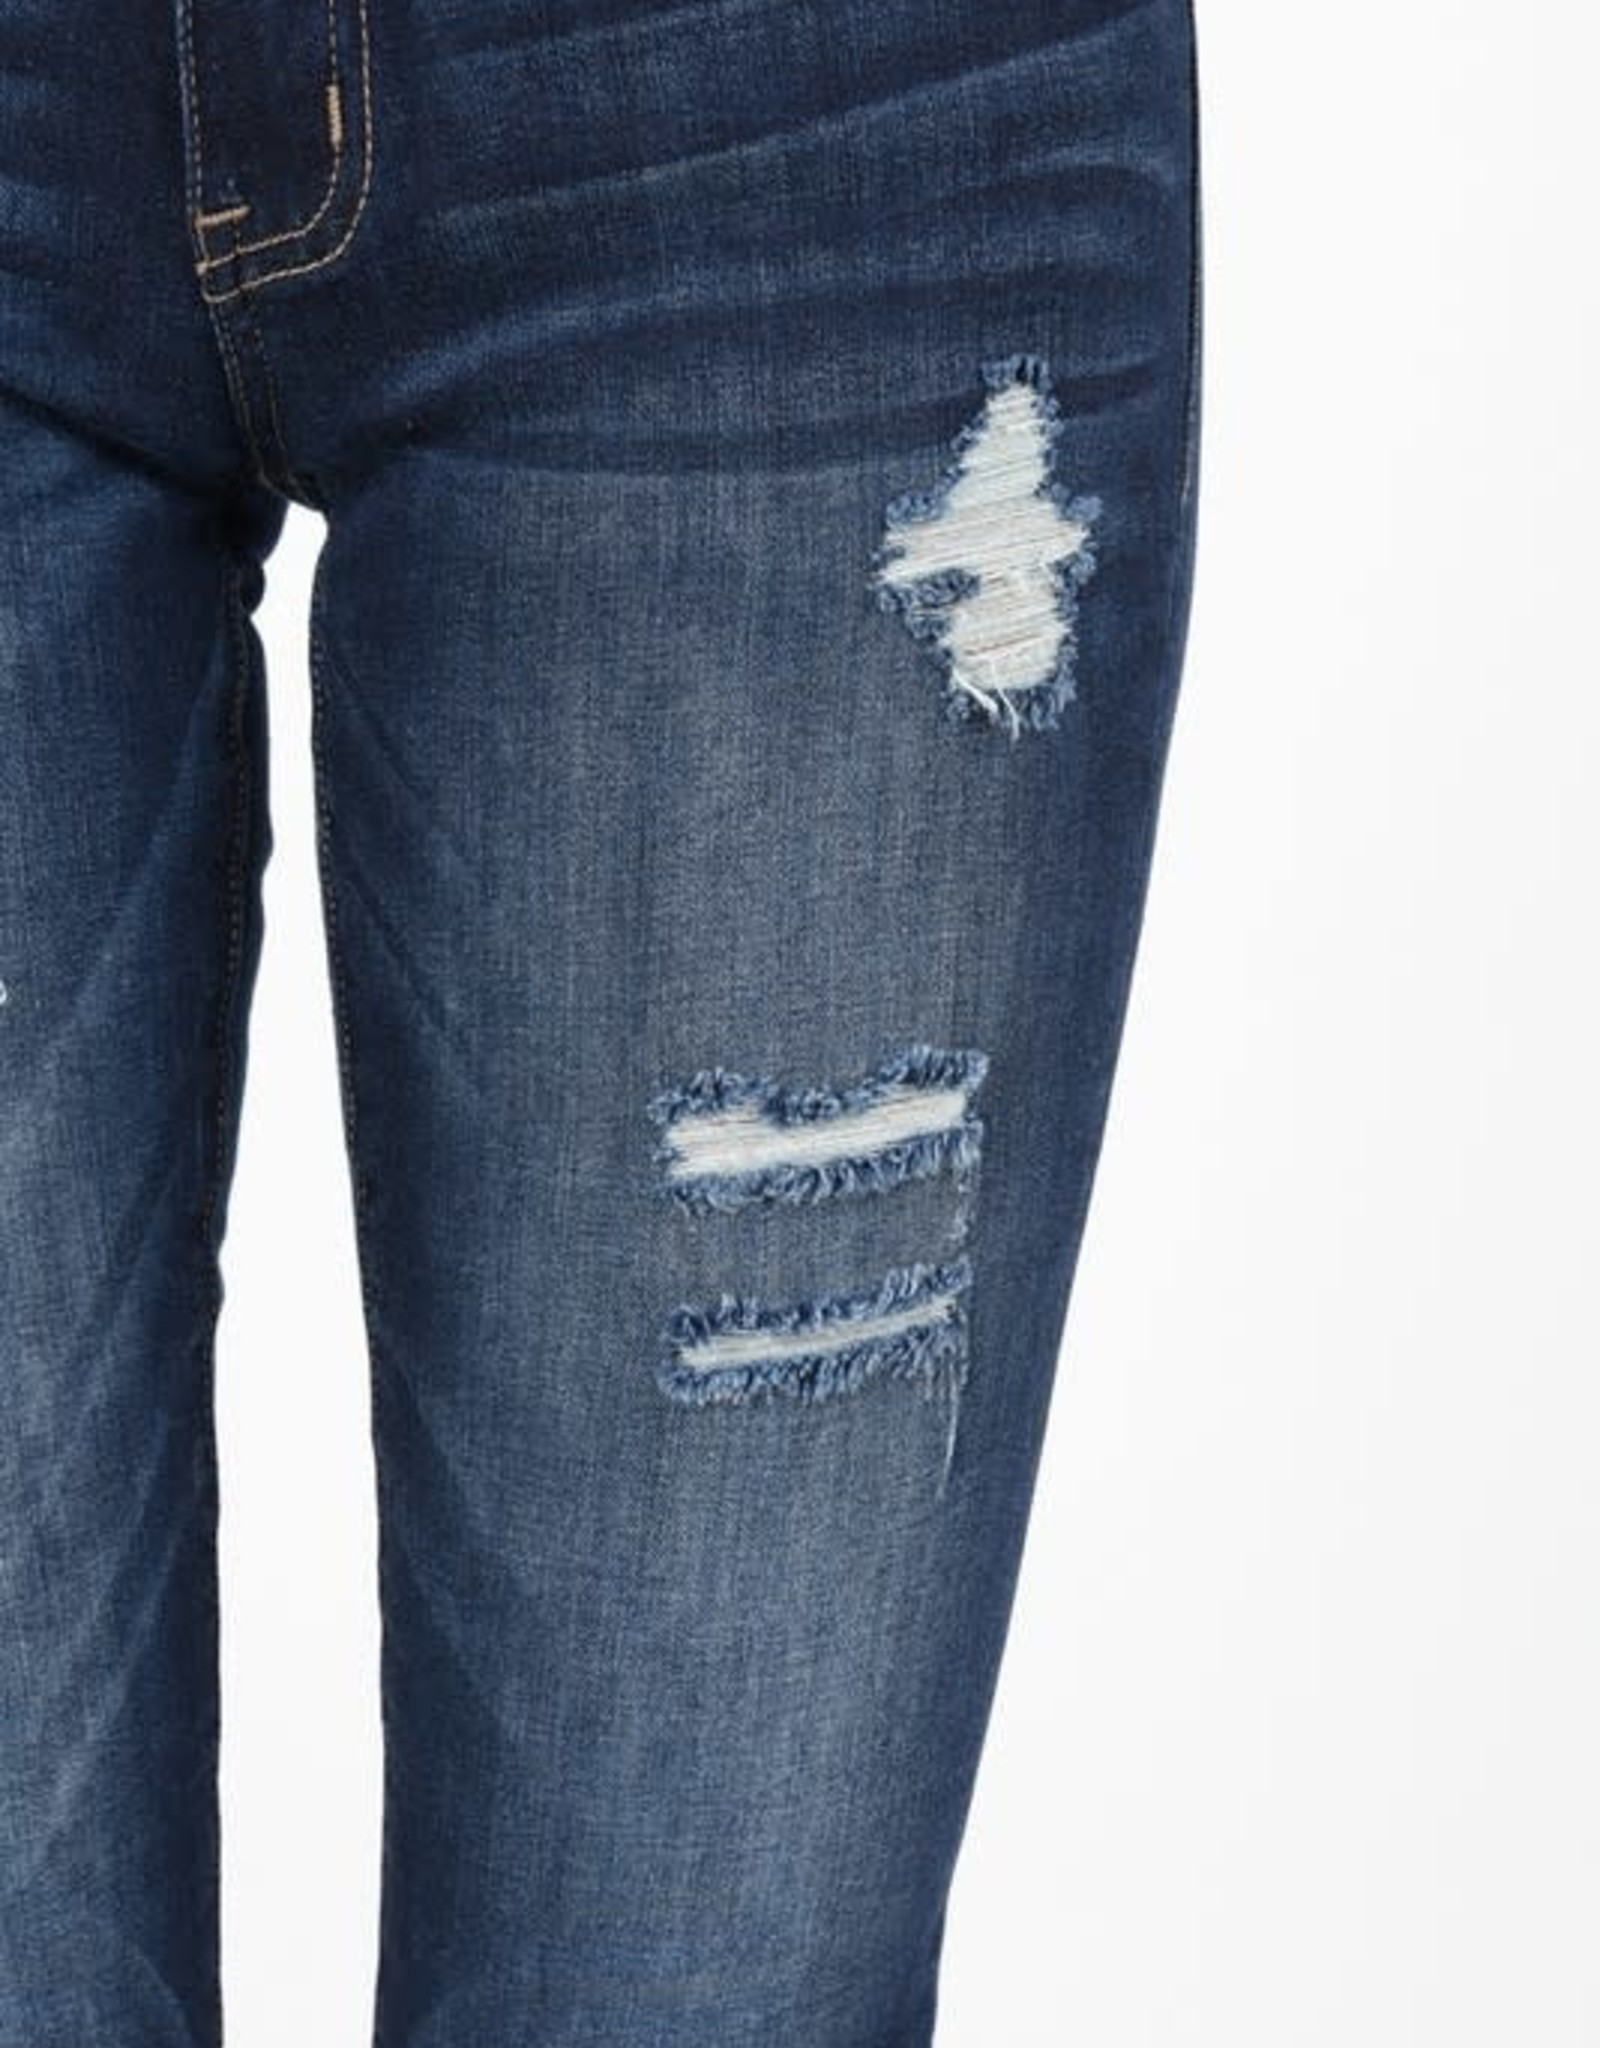 Low rise distressed cuffed